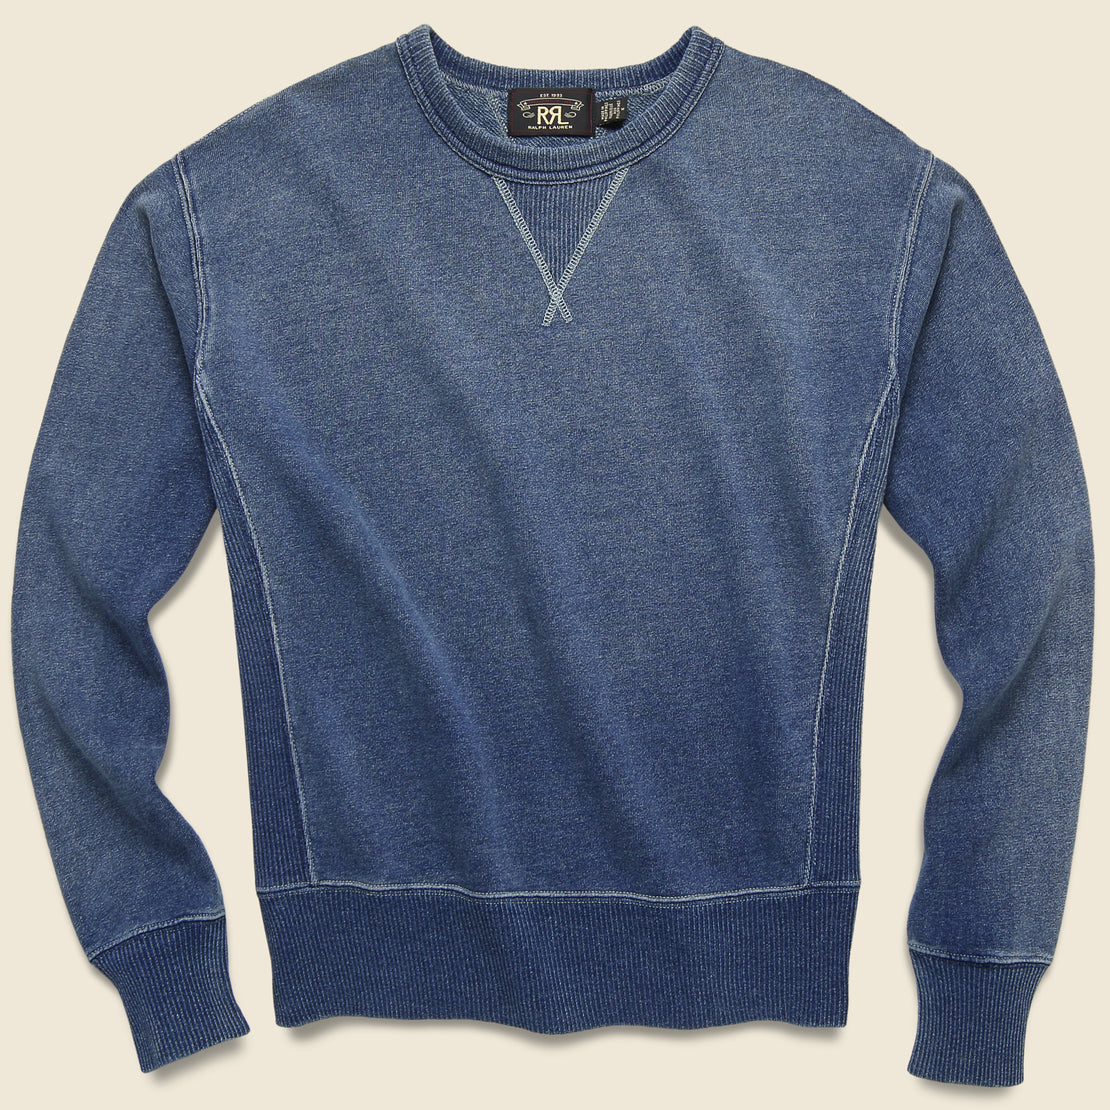 RRL Double V Crewneck Sweatshirt - Washed Blue Indigo